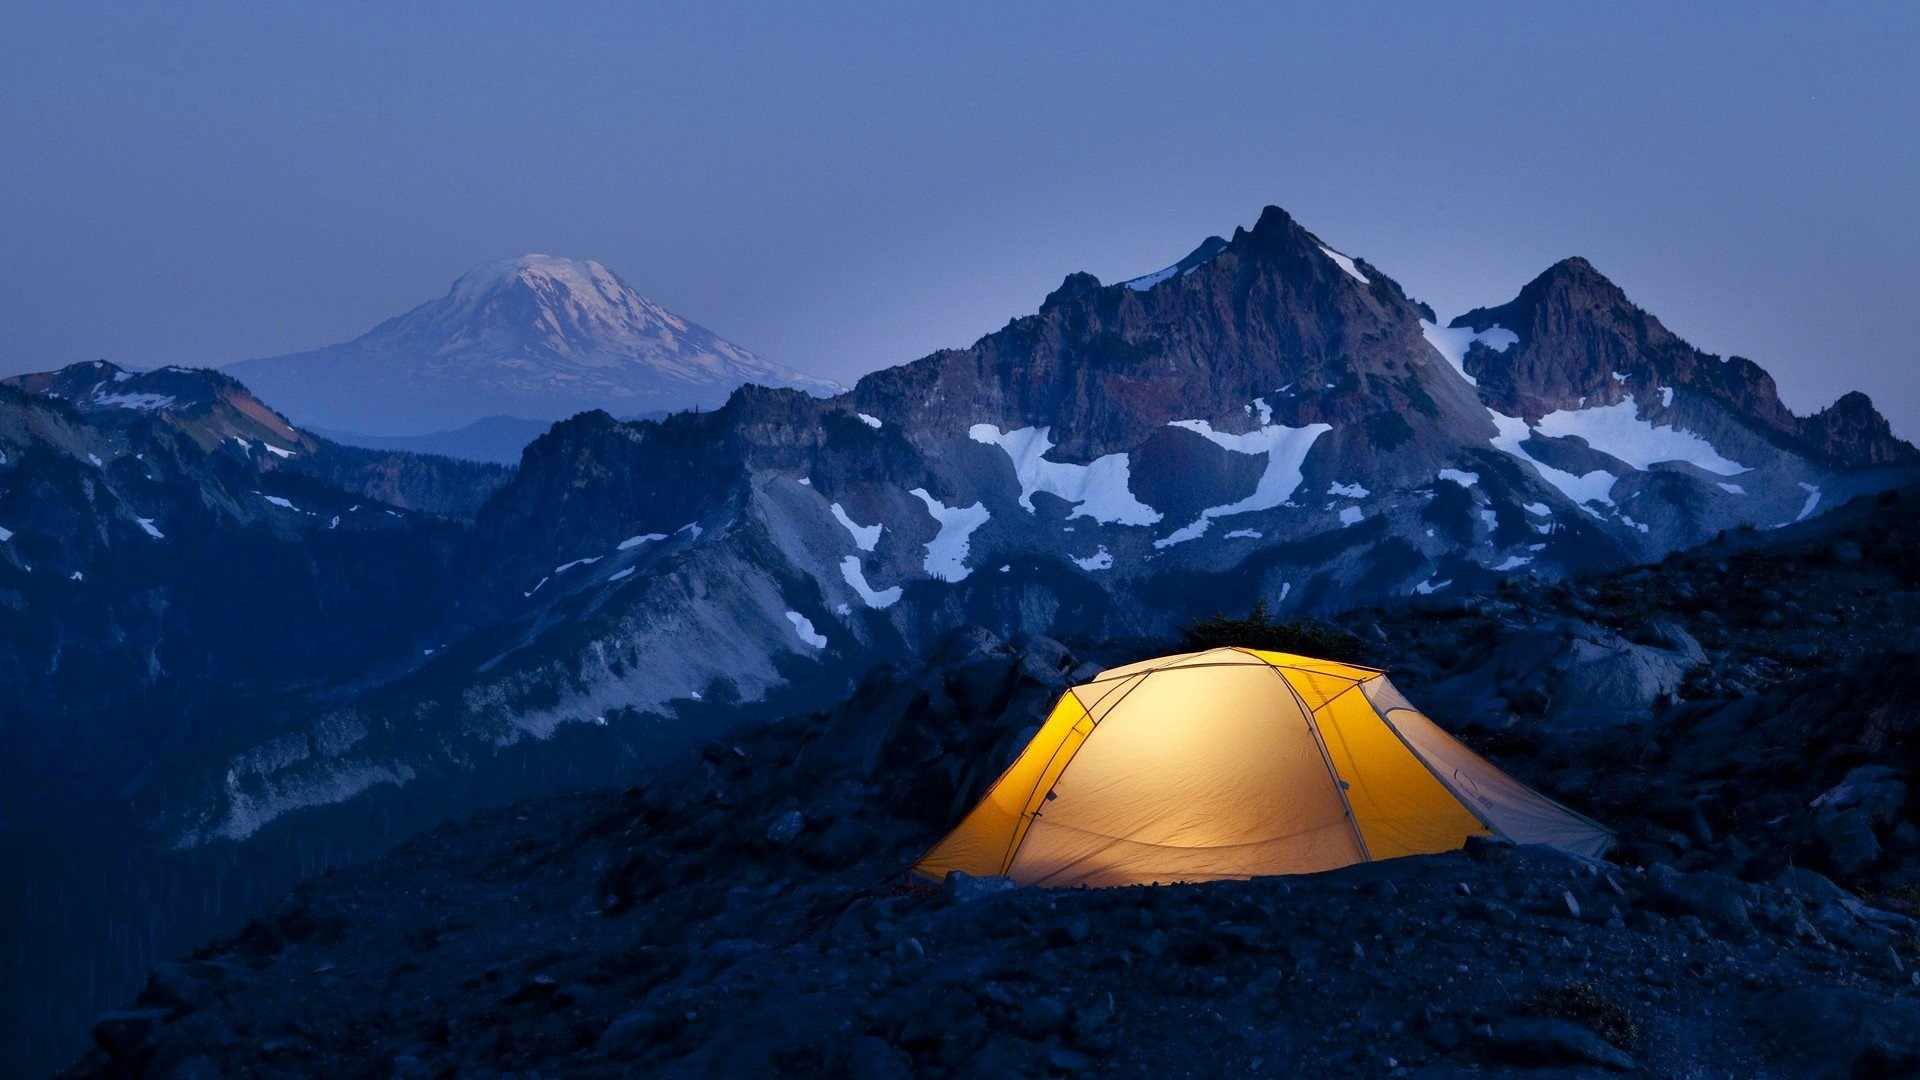 1920x1080 Photography Camping mountain night sport light snow wallpapers.